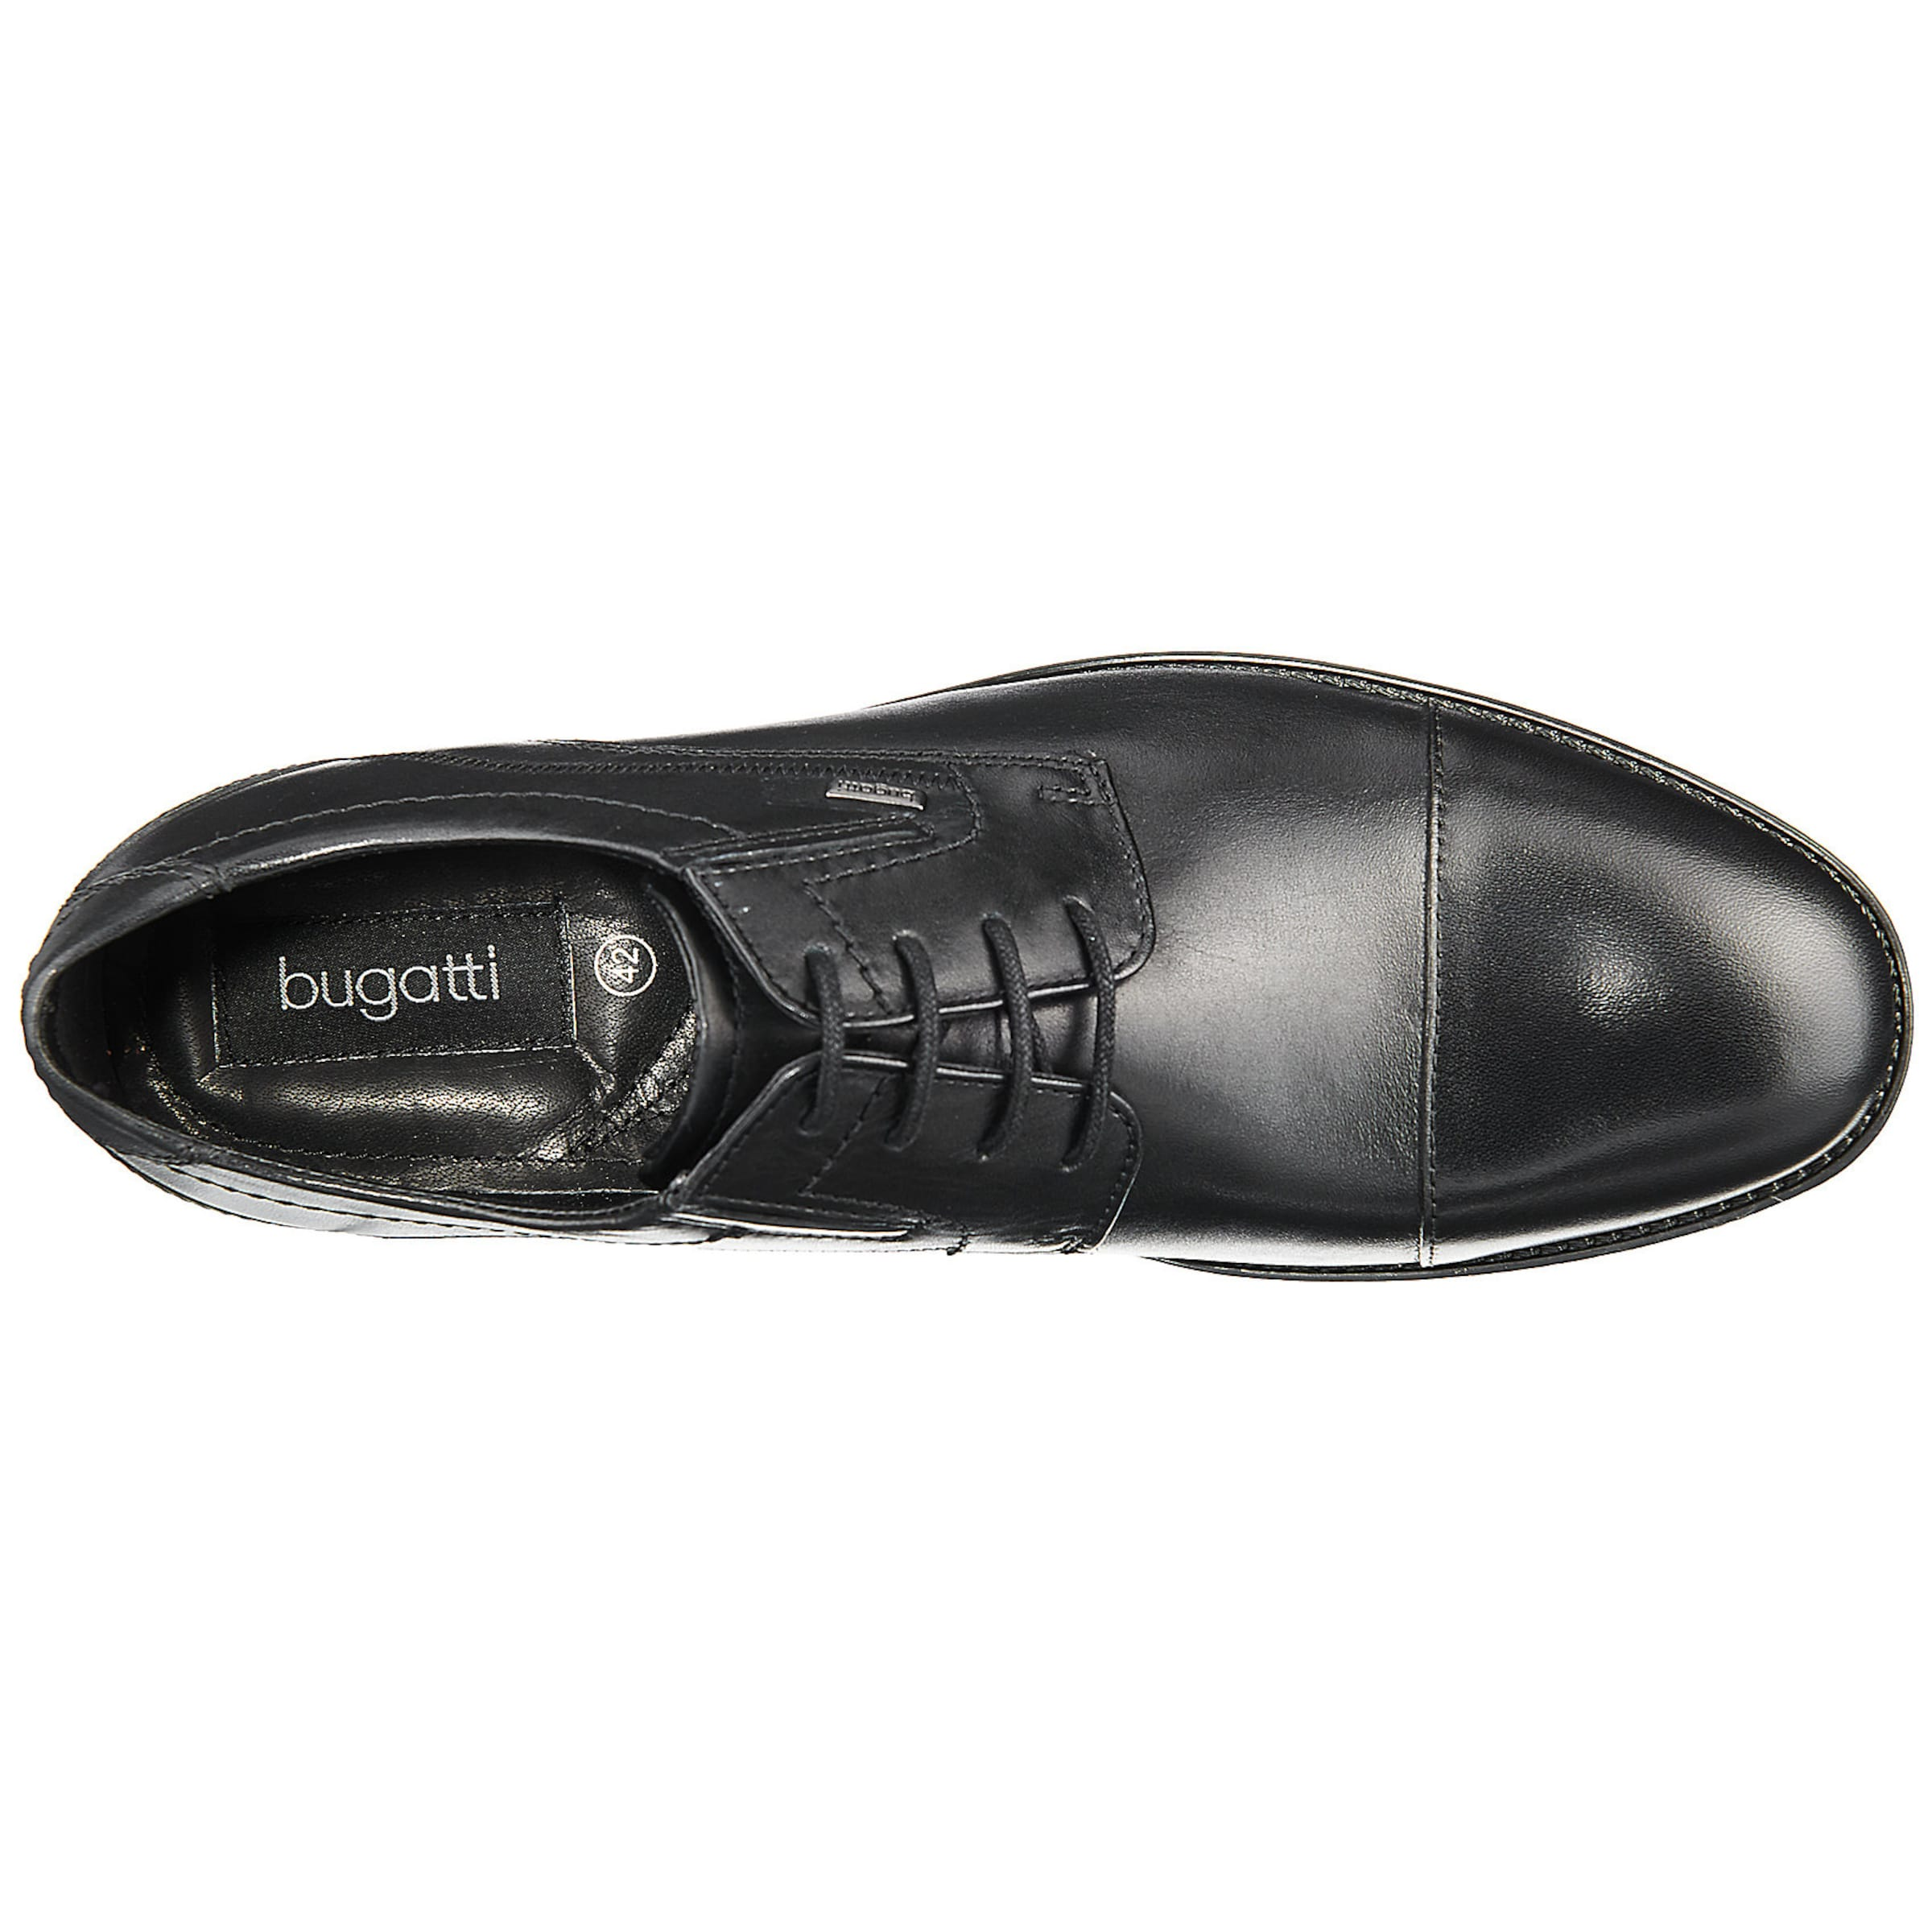 Business Schwarz Business Bugatti Schuhe Schuhe In Bugatti QBWrxoCed